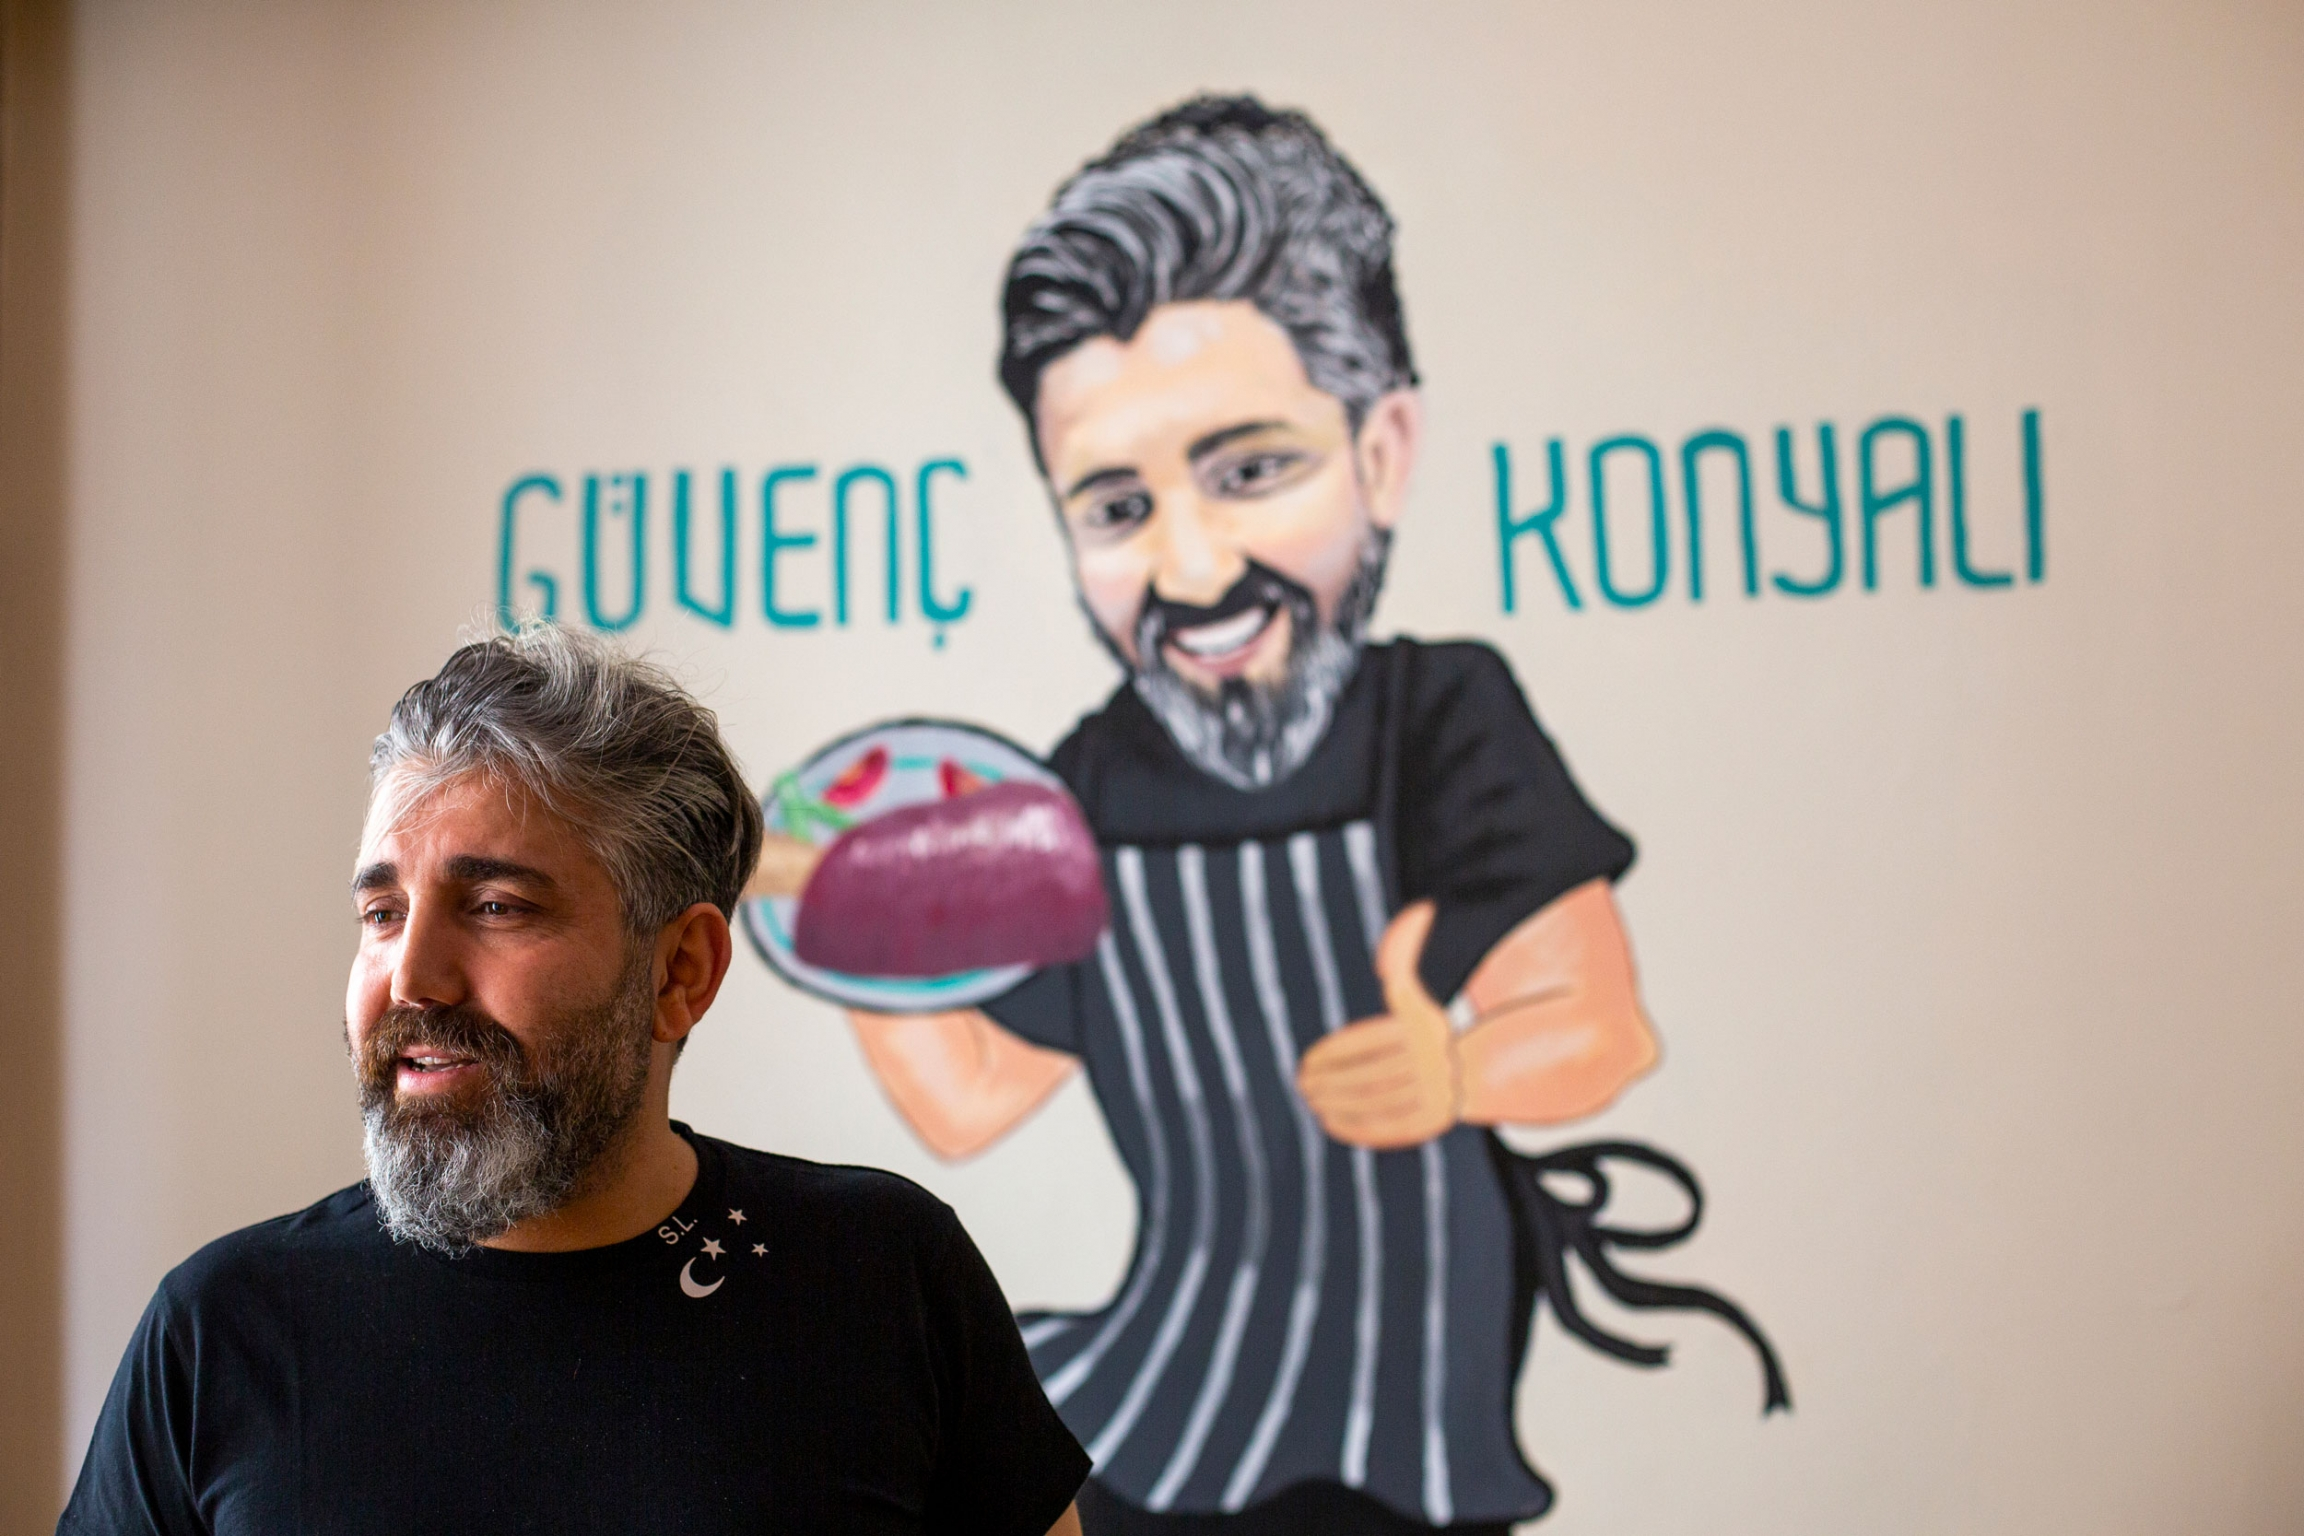 A man is shown with a salt and pepper beard and wearing a black shirt with an illustration of a chef behind him.